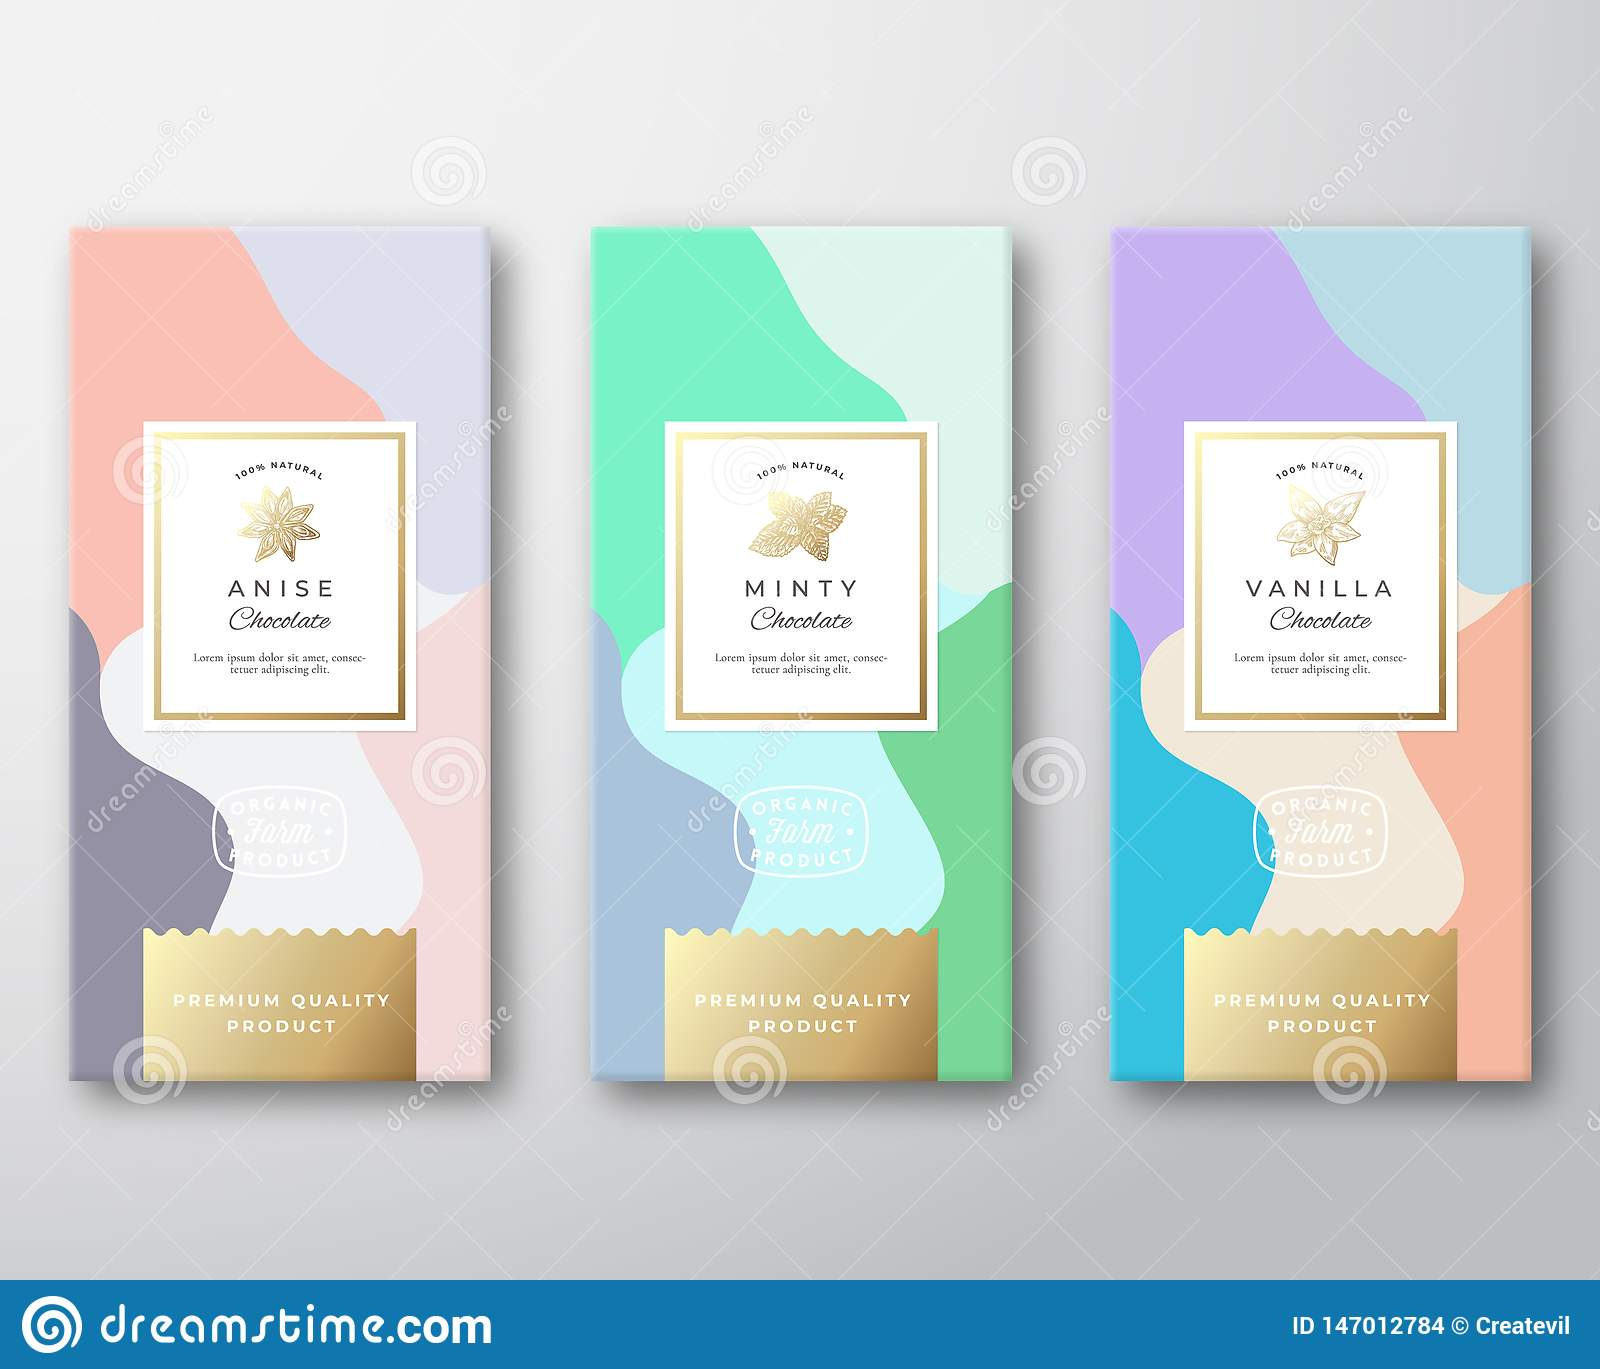 Mint Vanilla And Anise Chocolate Labels Set Abstract Vector